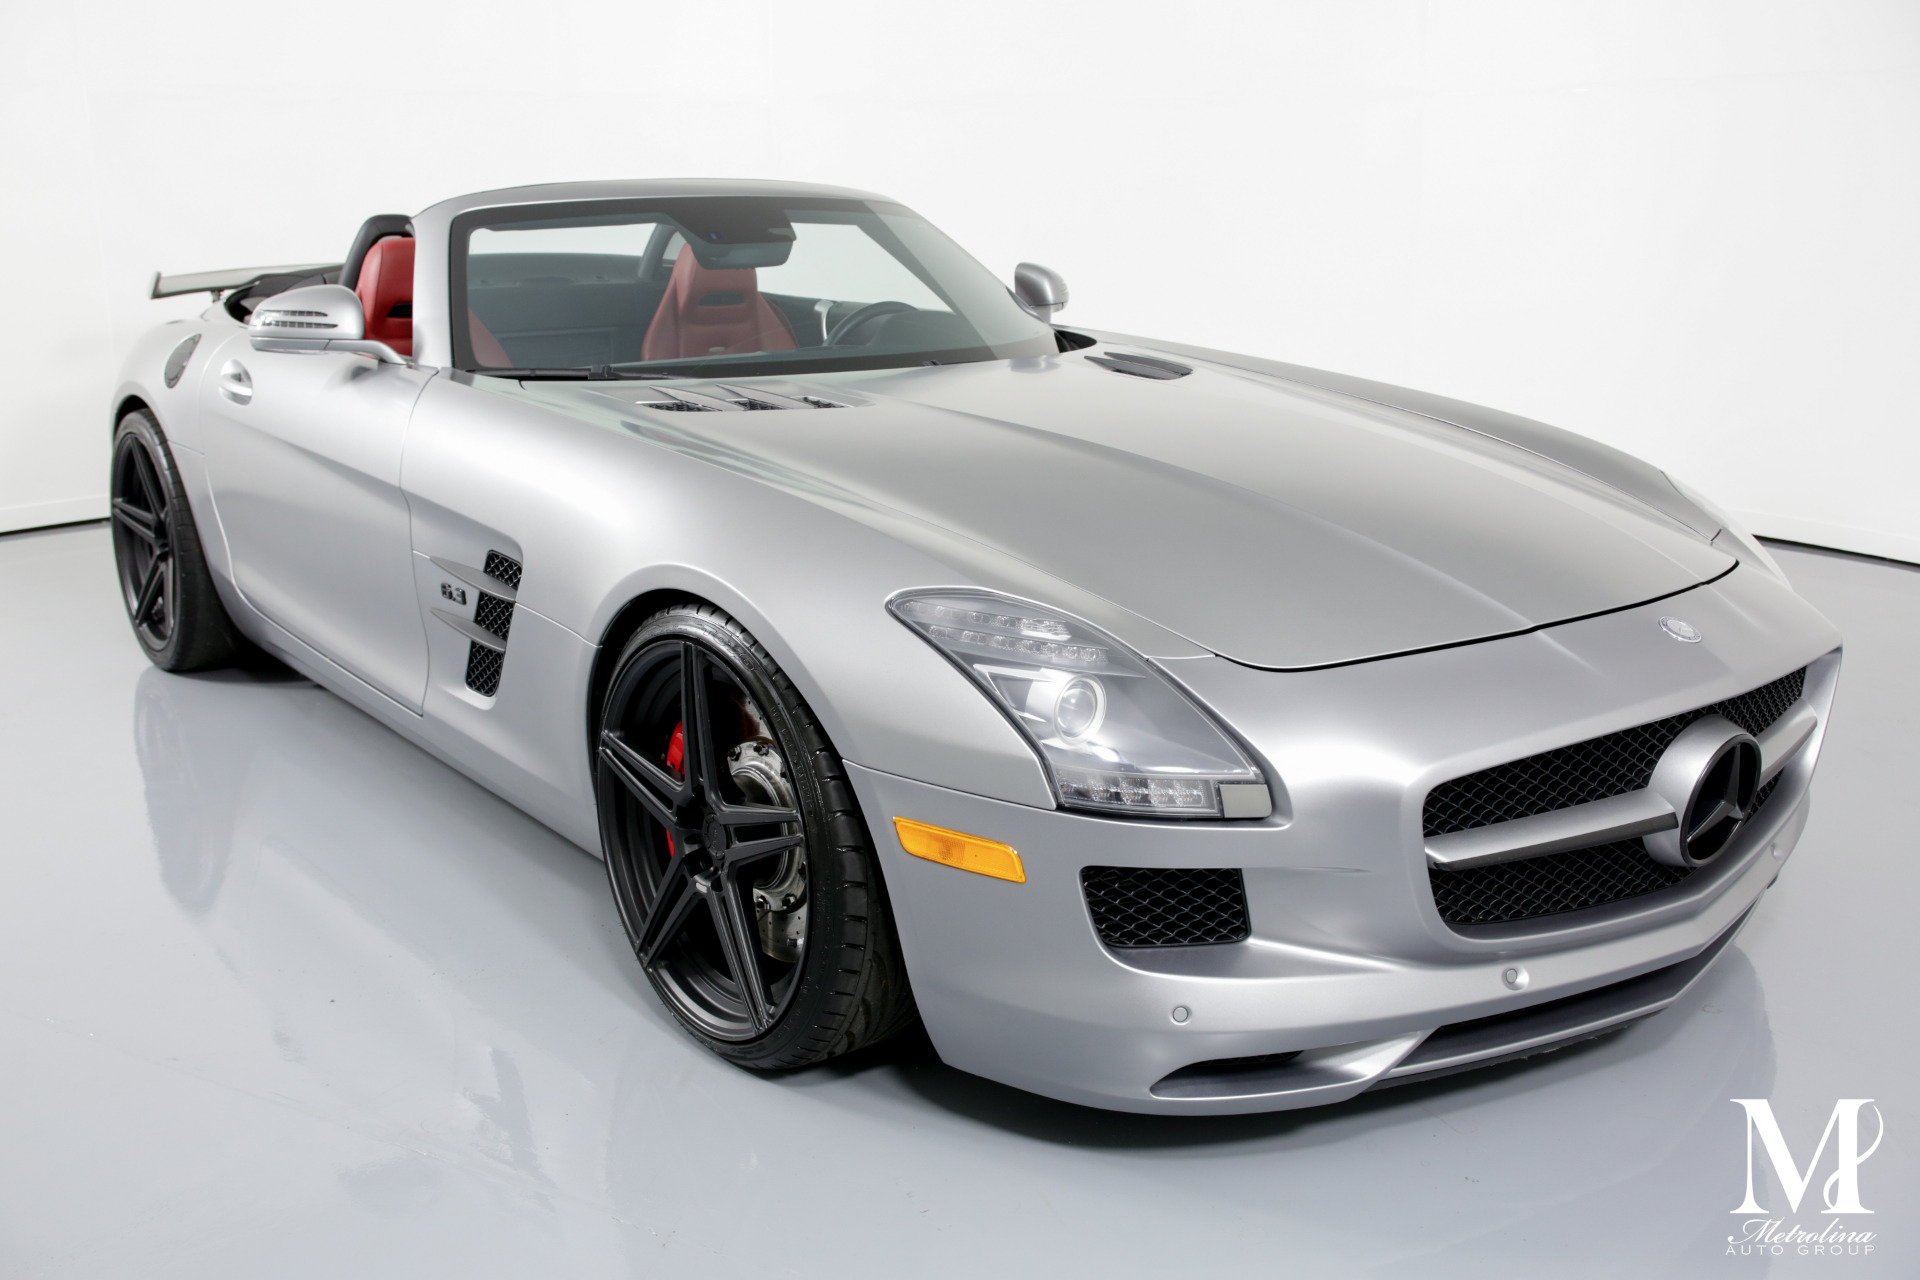 Used 2012 Mercedes-Benz SLS AMG for sale $139,996 at Metrolina Auto Group in Charlotte NC 28217 - 3